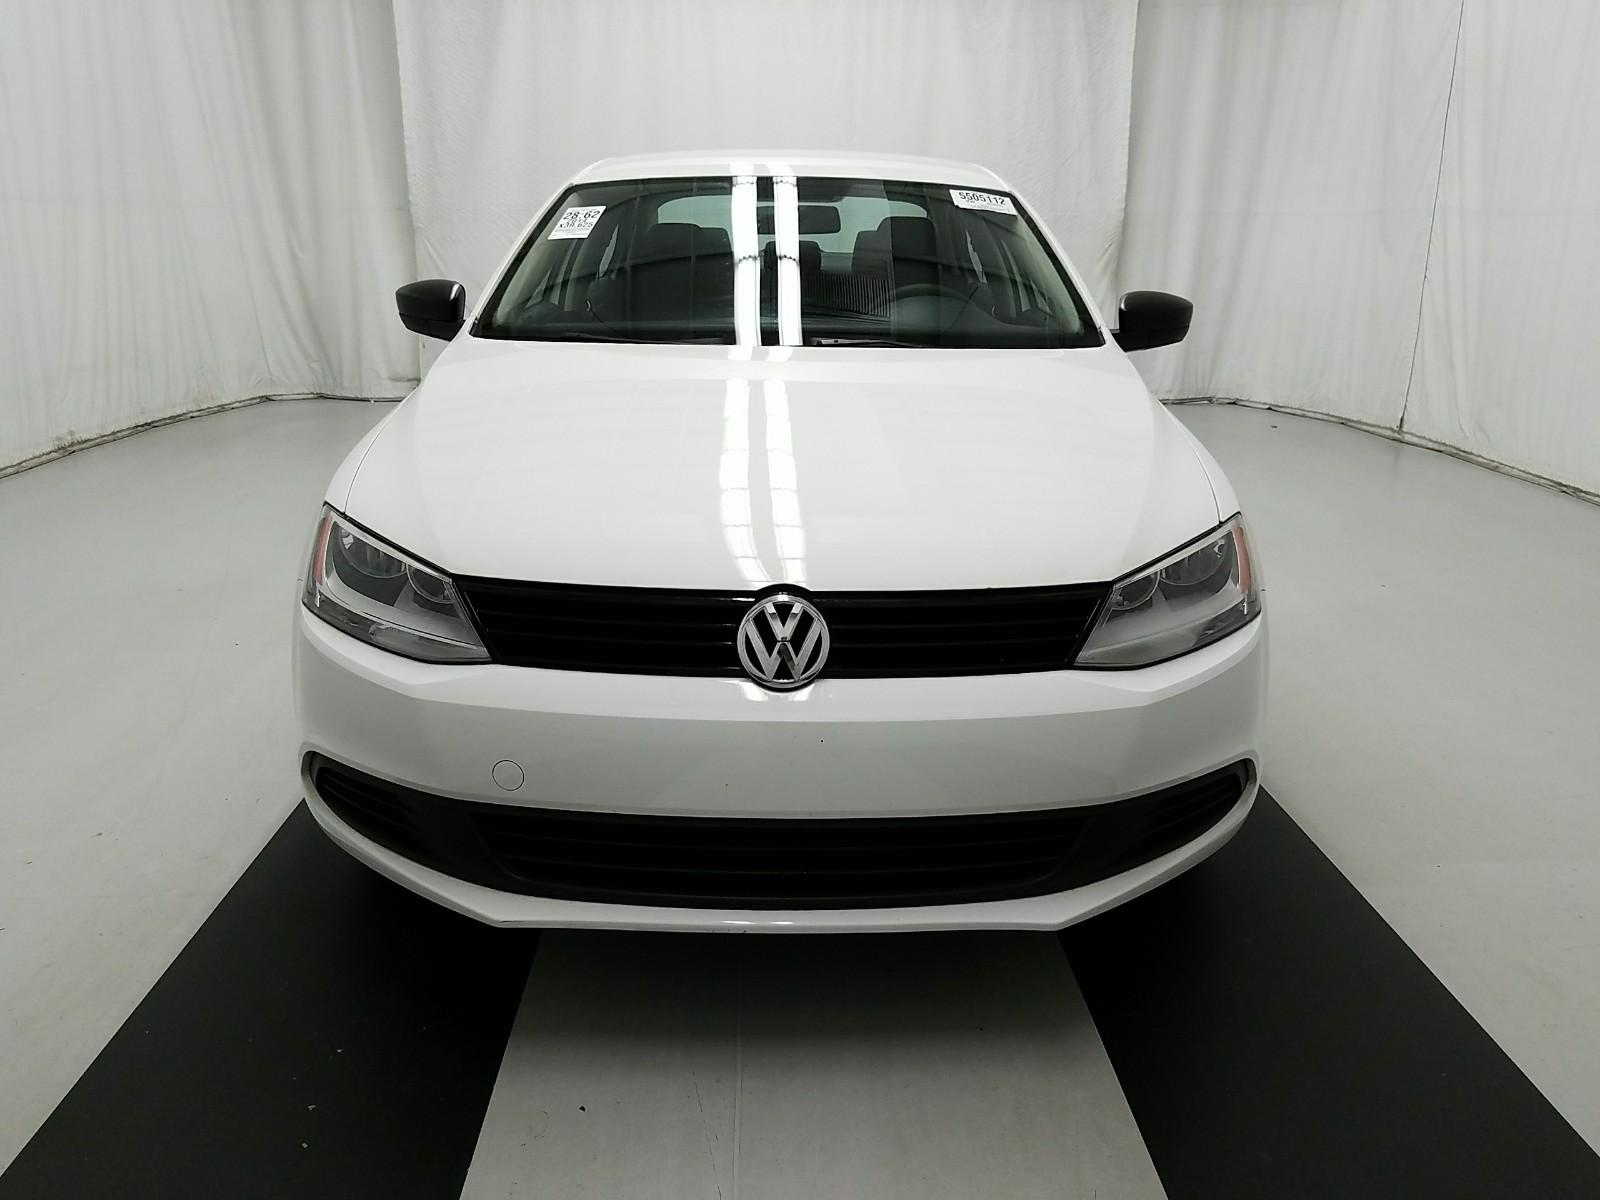 14_vw_jetta_white_2.jpg